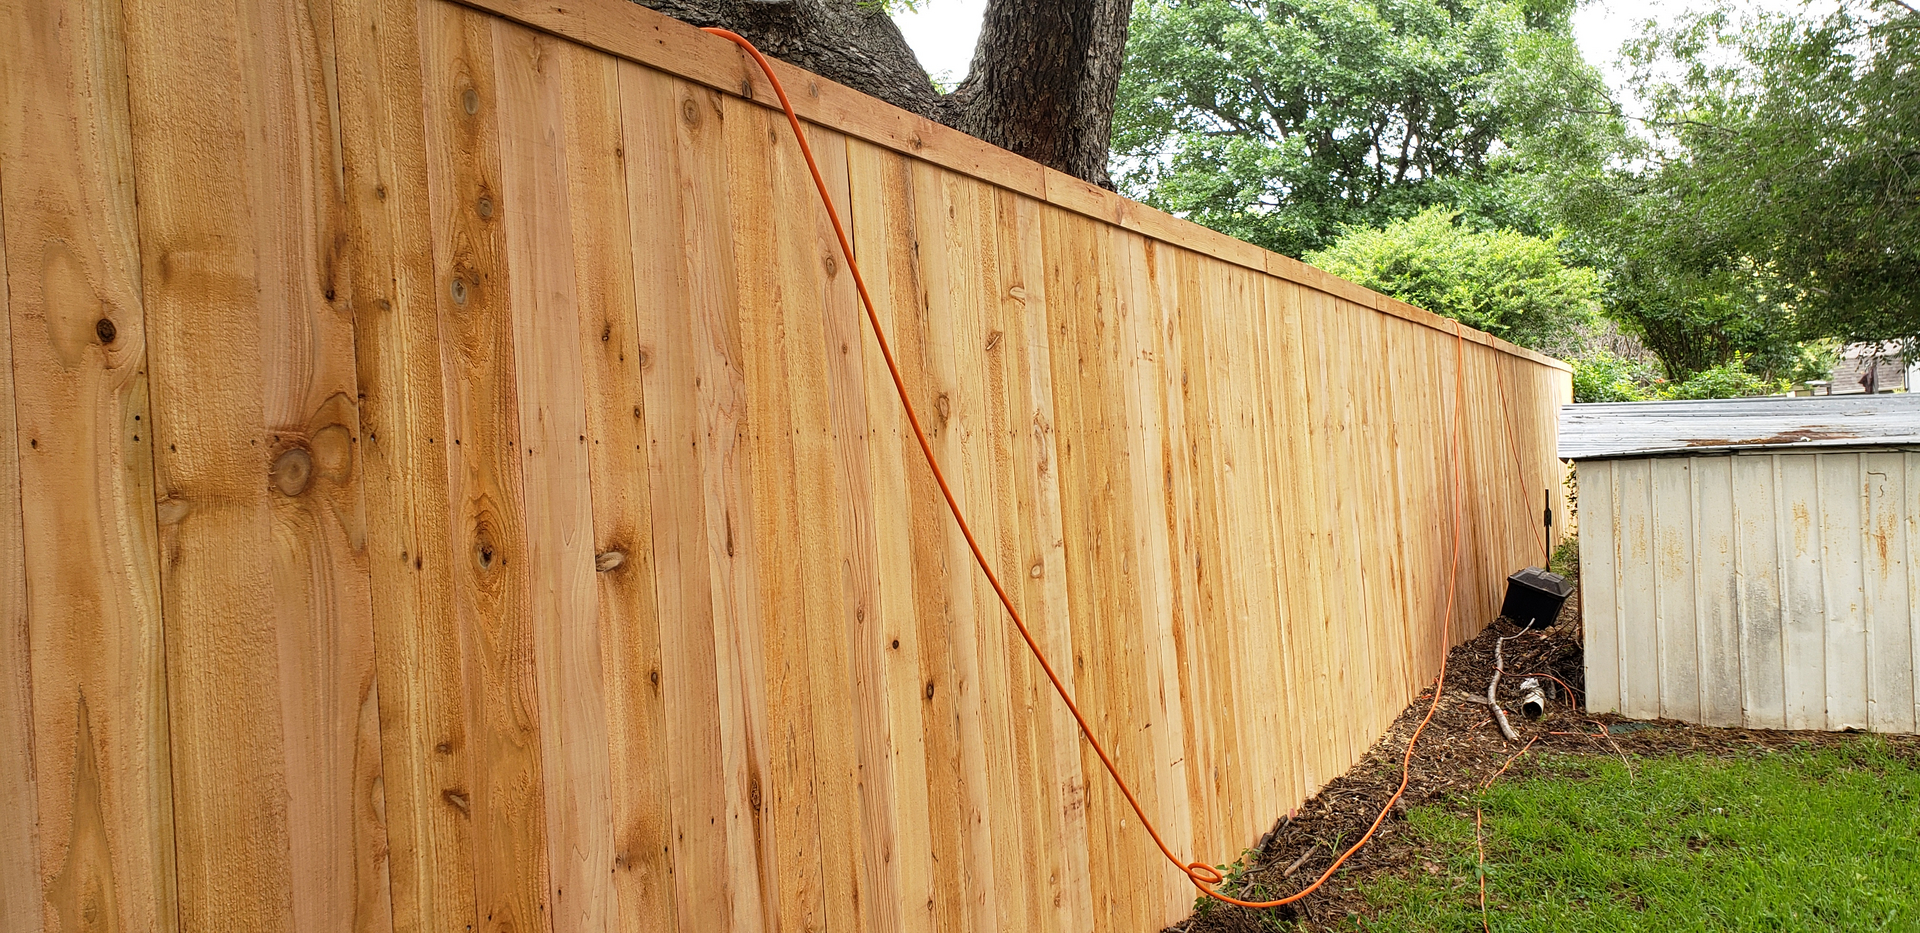 8ft Cedar wood fence replacement